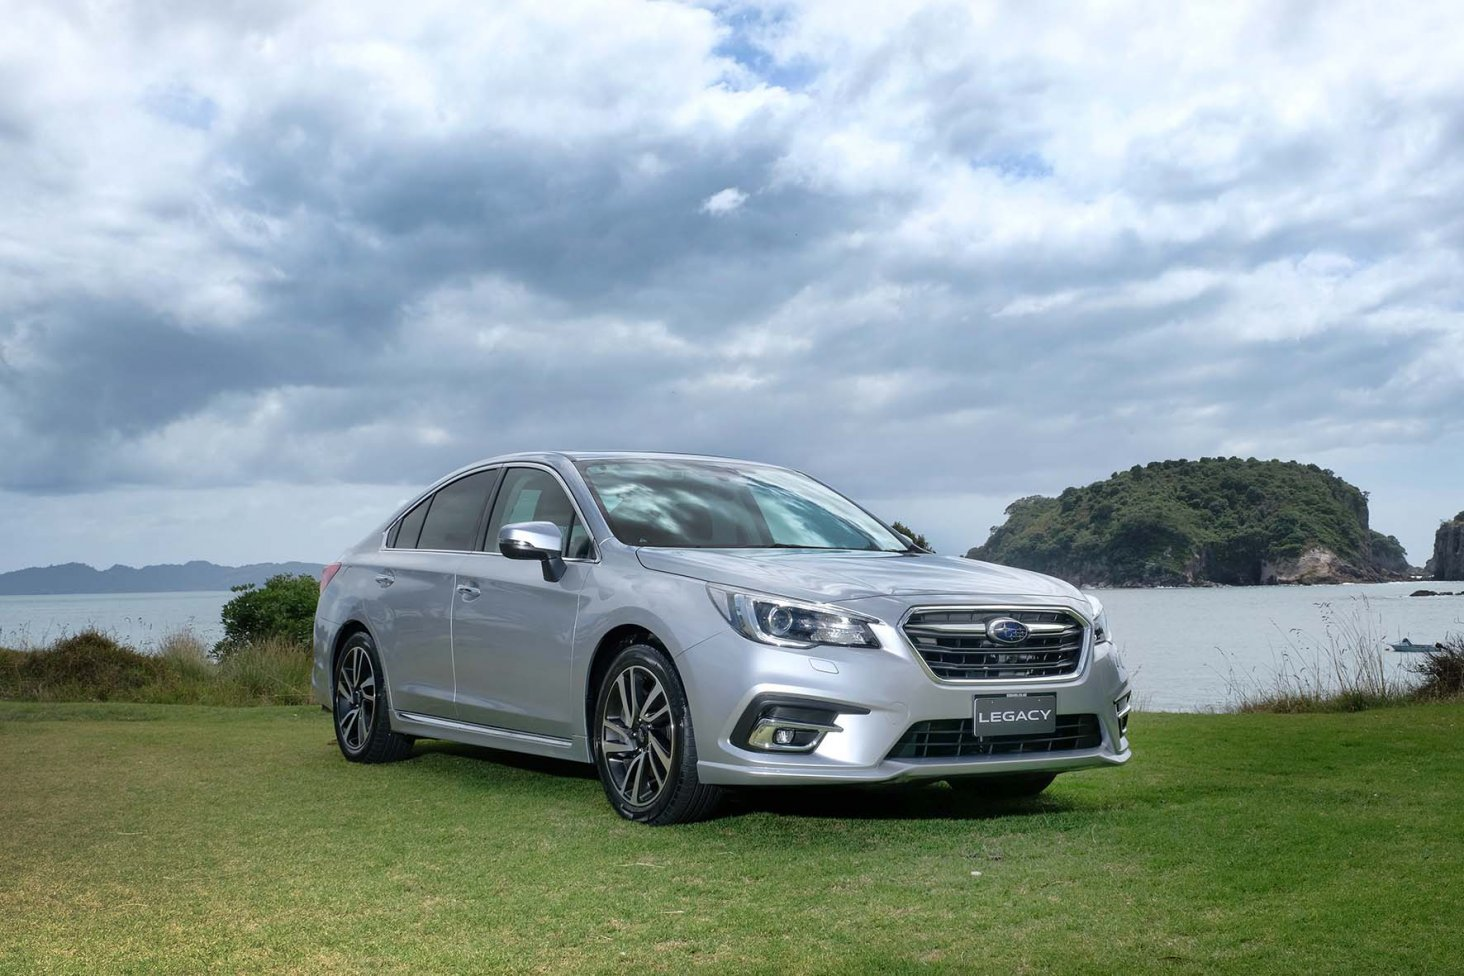 subaru launches 2018 legacy line up subaru of new zealand. Black Bedroom Furniture Sets. Home Design Ideas